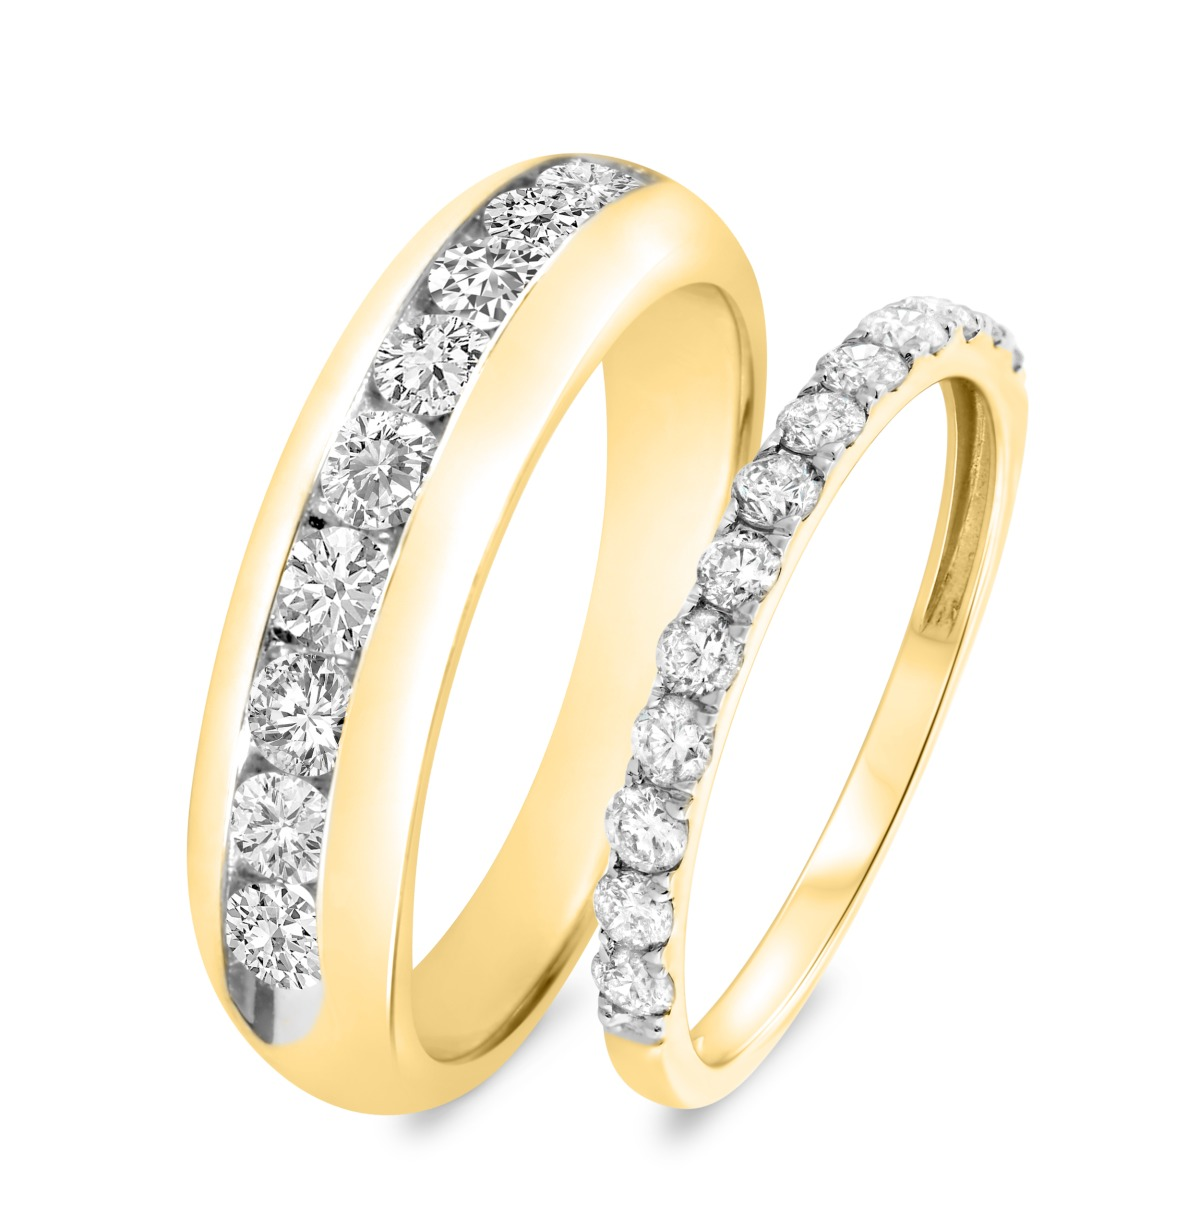 1 1/2 CT. T.W. Diamond Matching Wedding Band Set 14K Yellow Gold